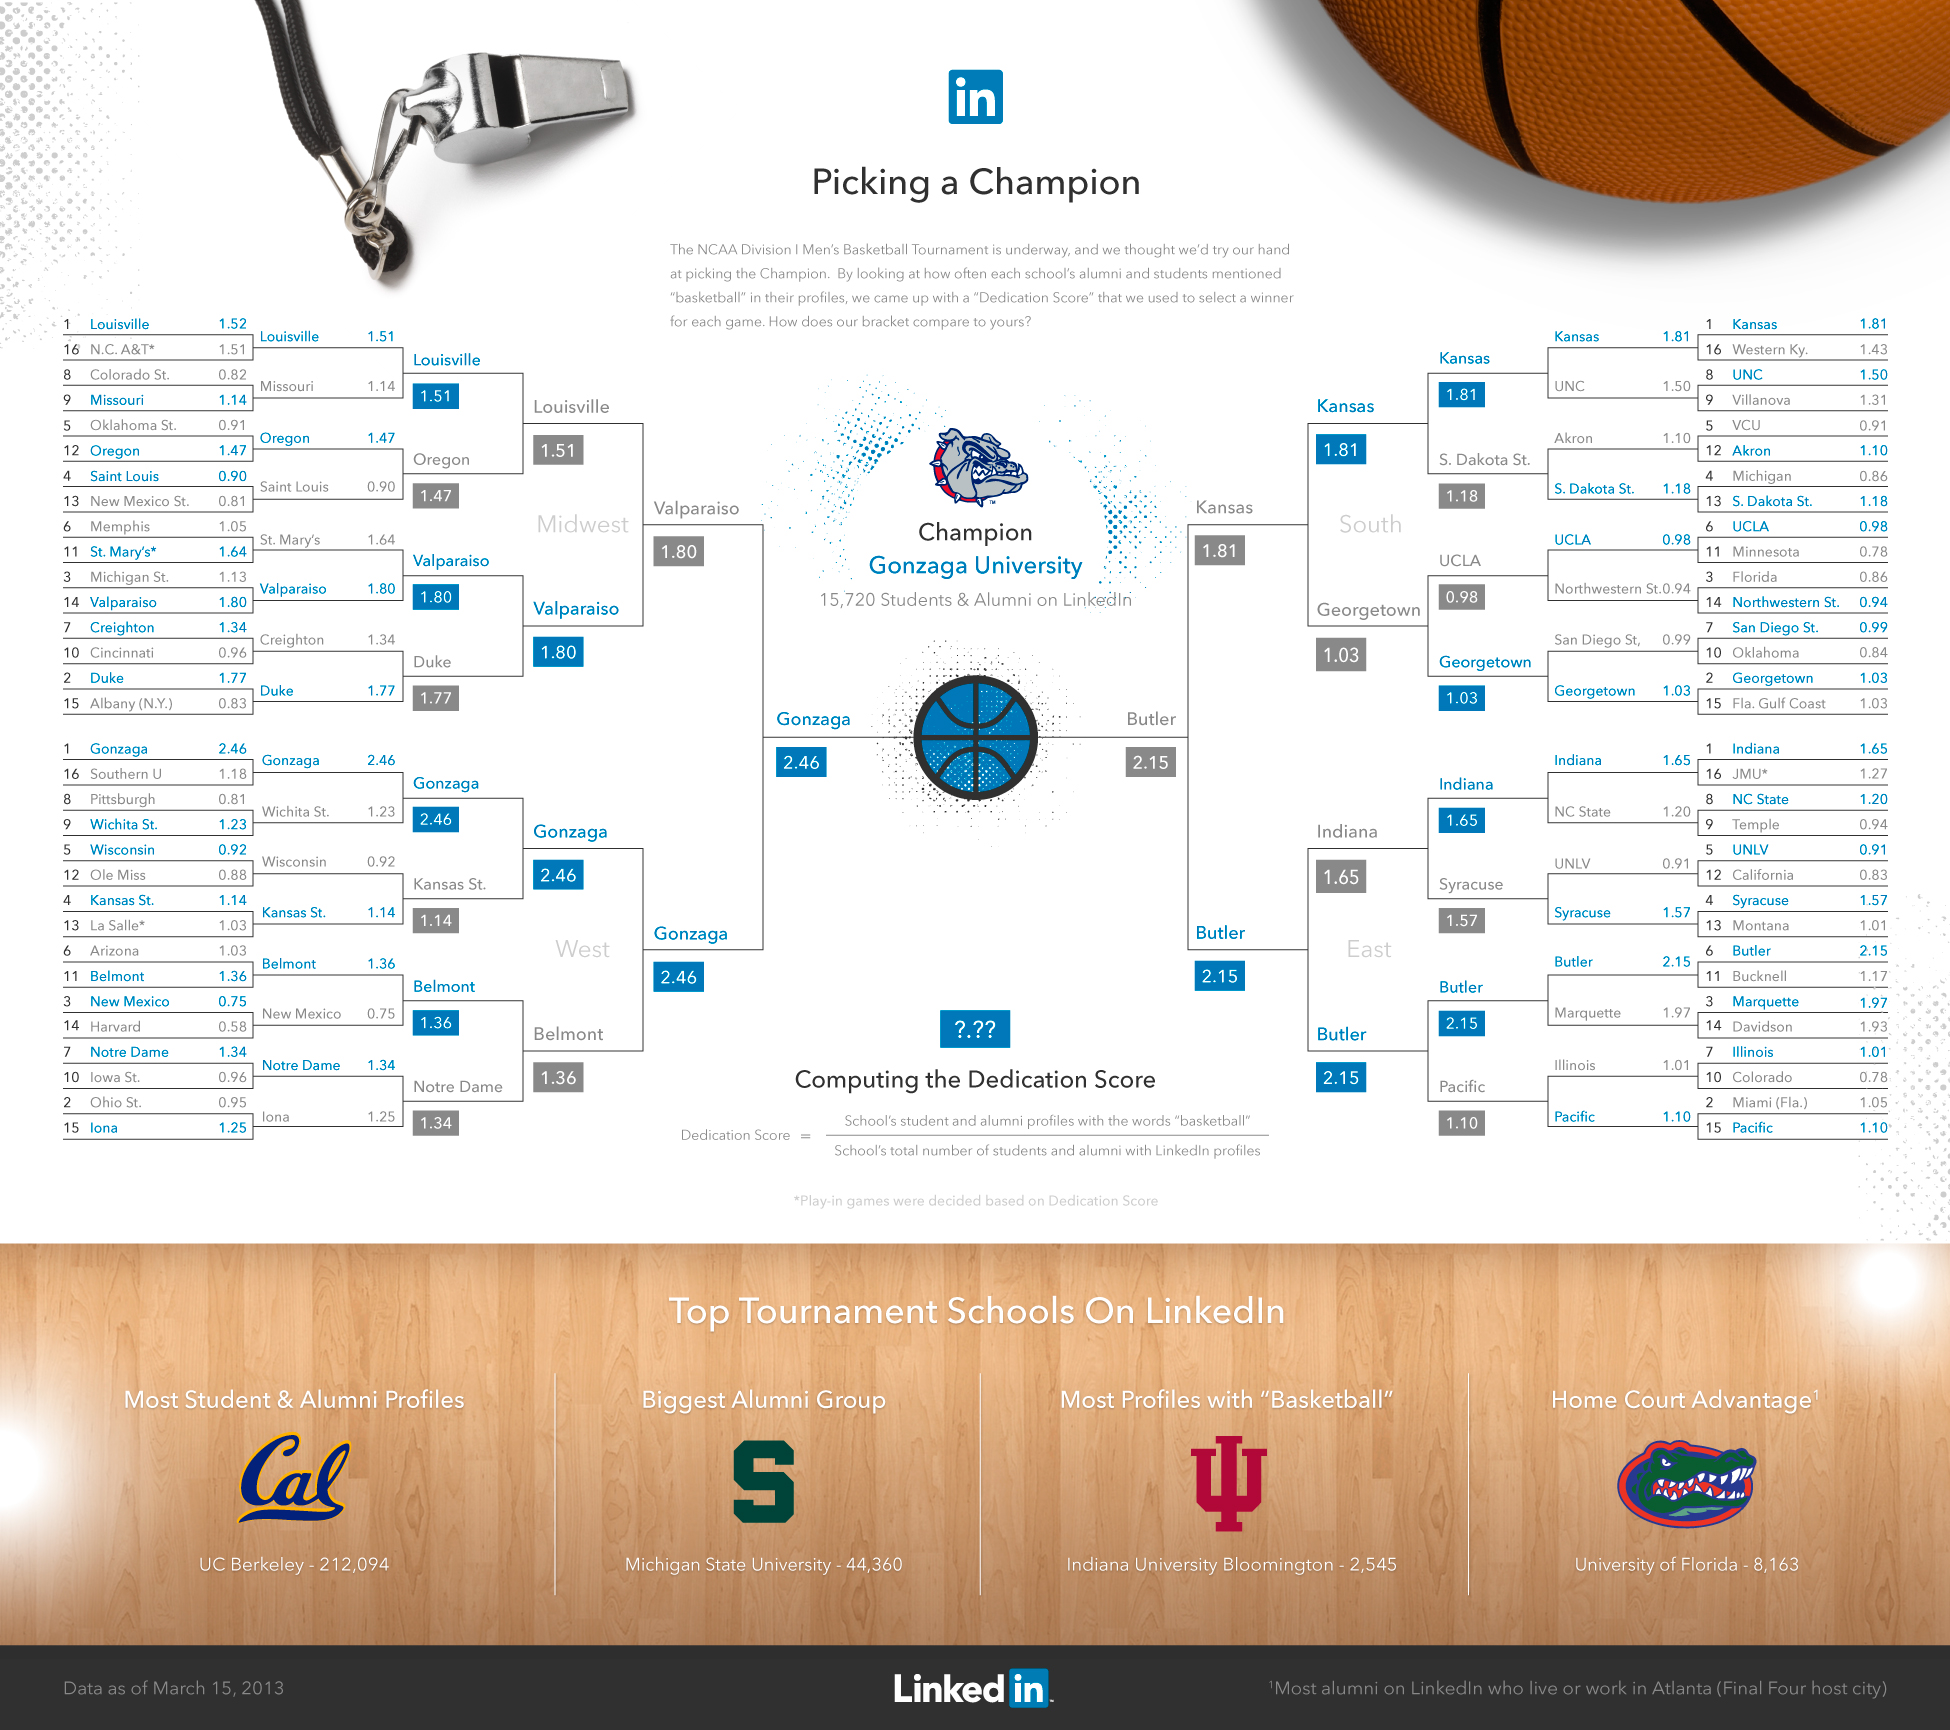 LinkedIn NCAA Champion